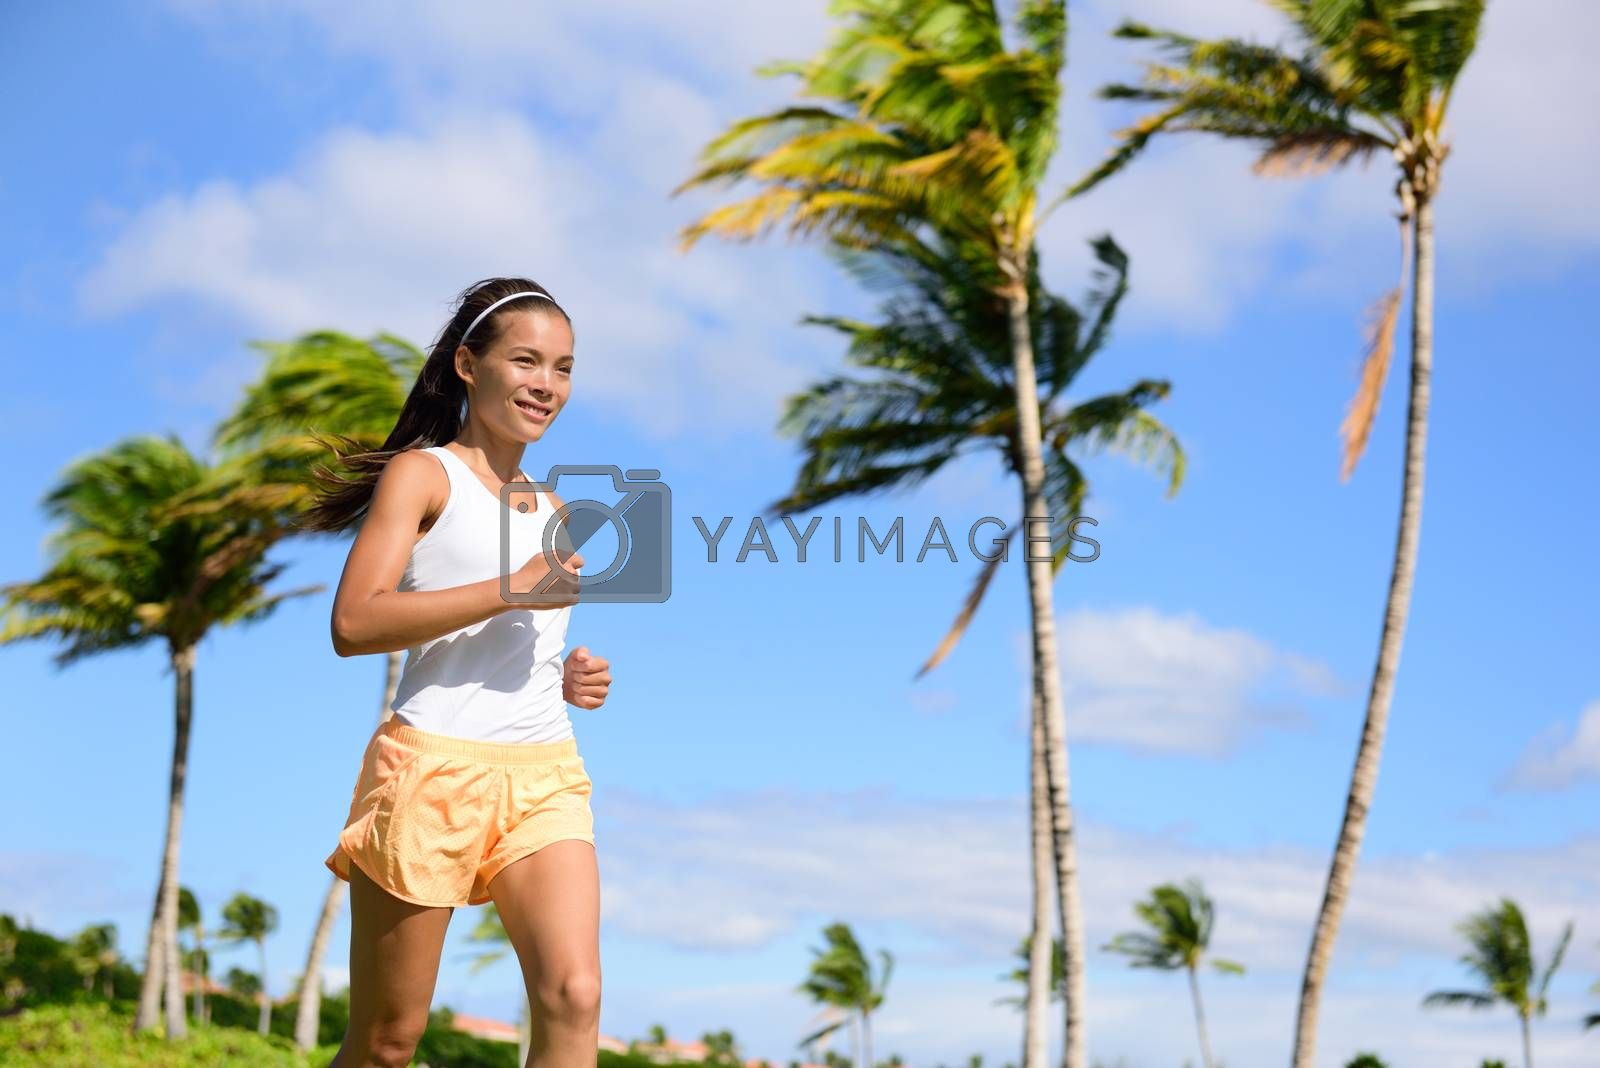 Asian runner girl jogging in tropical nature park outdoors with palm trees background during summer. Young adult sport woman running staying fit wearing orange fitness shorts and tank top.